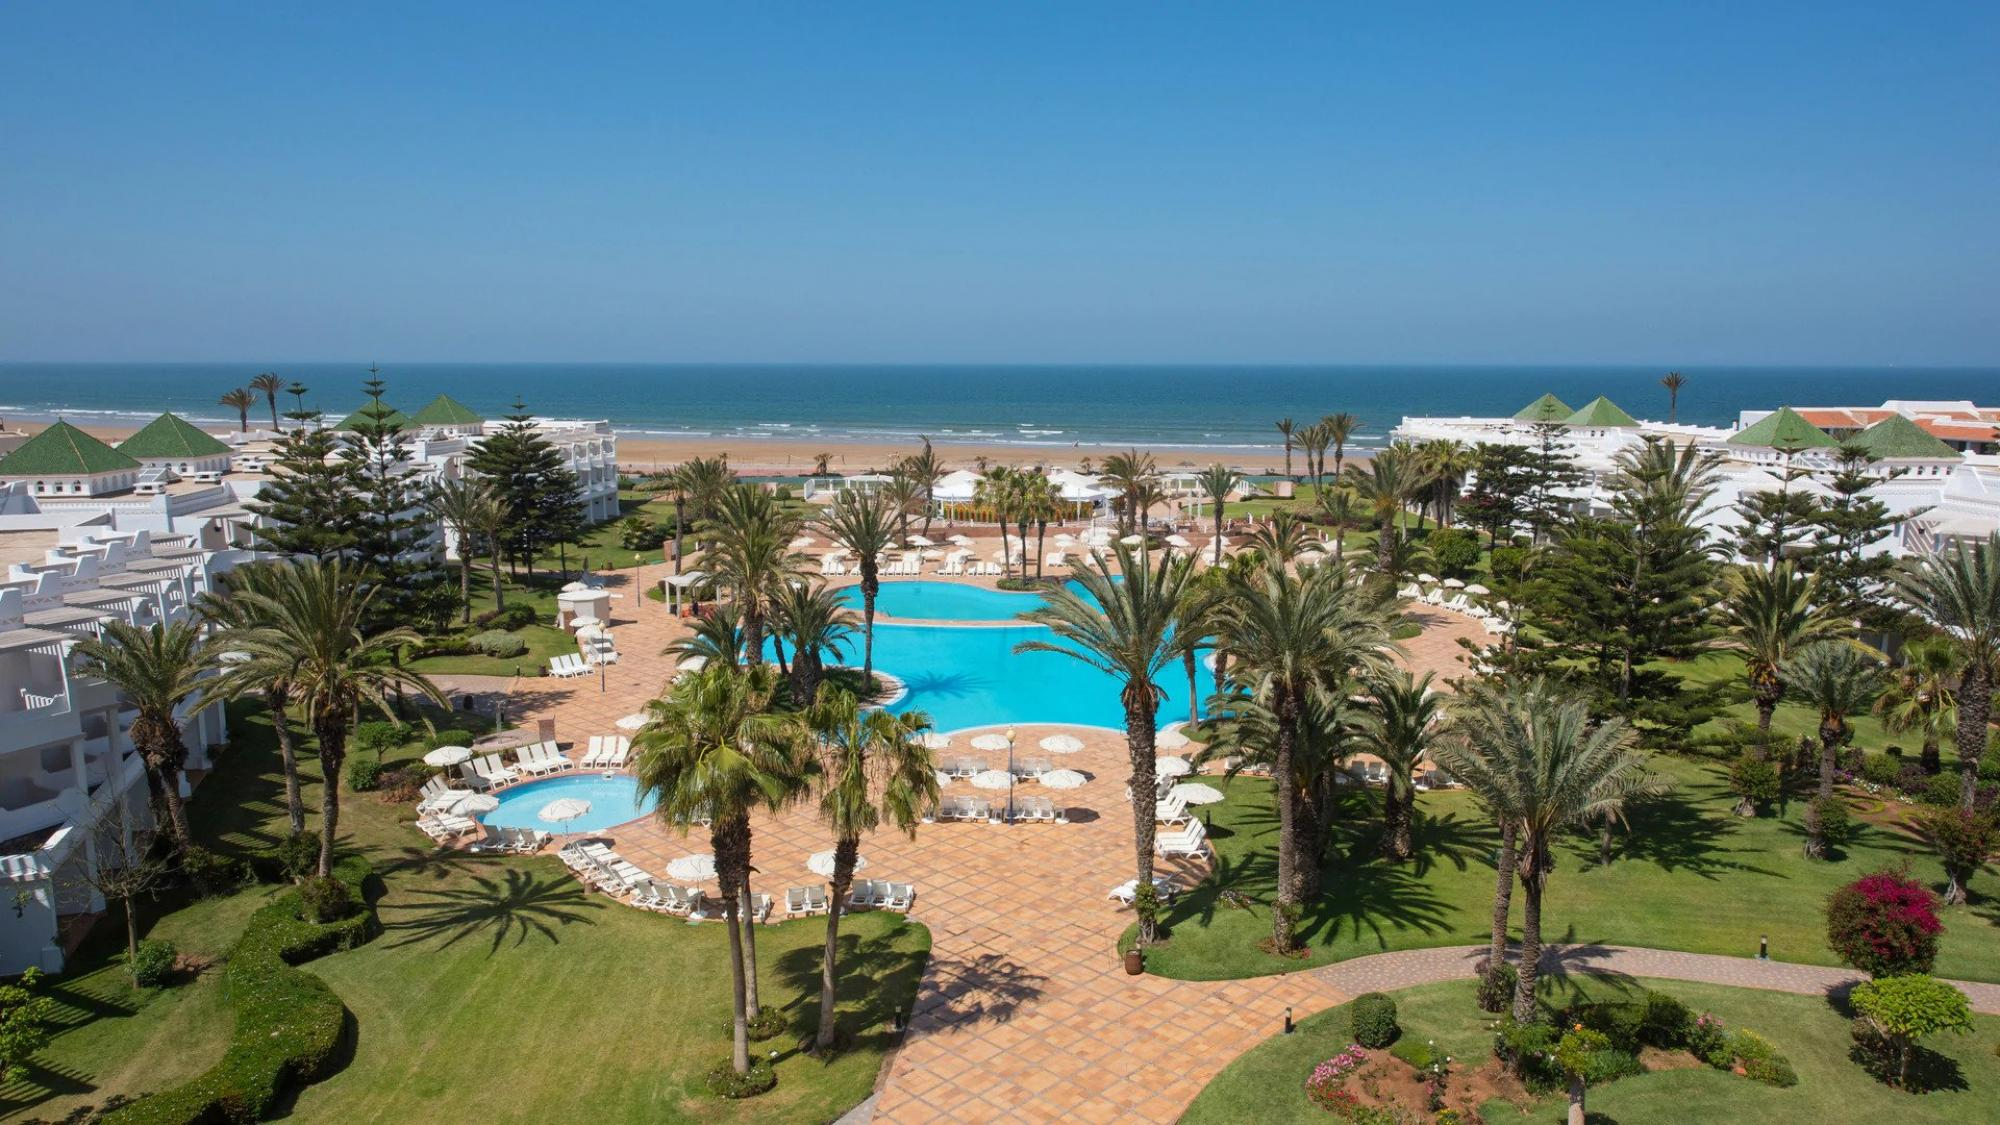 All The Iberostar Founty Beach hotel's picturesque hotel in stunning Morocco.